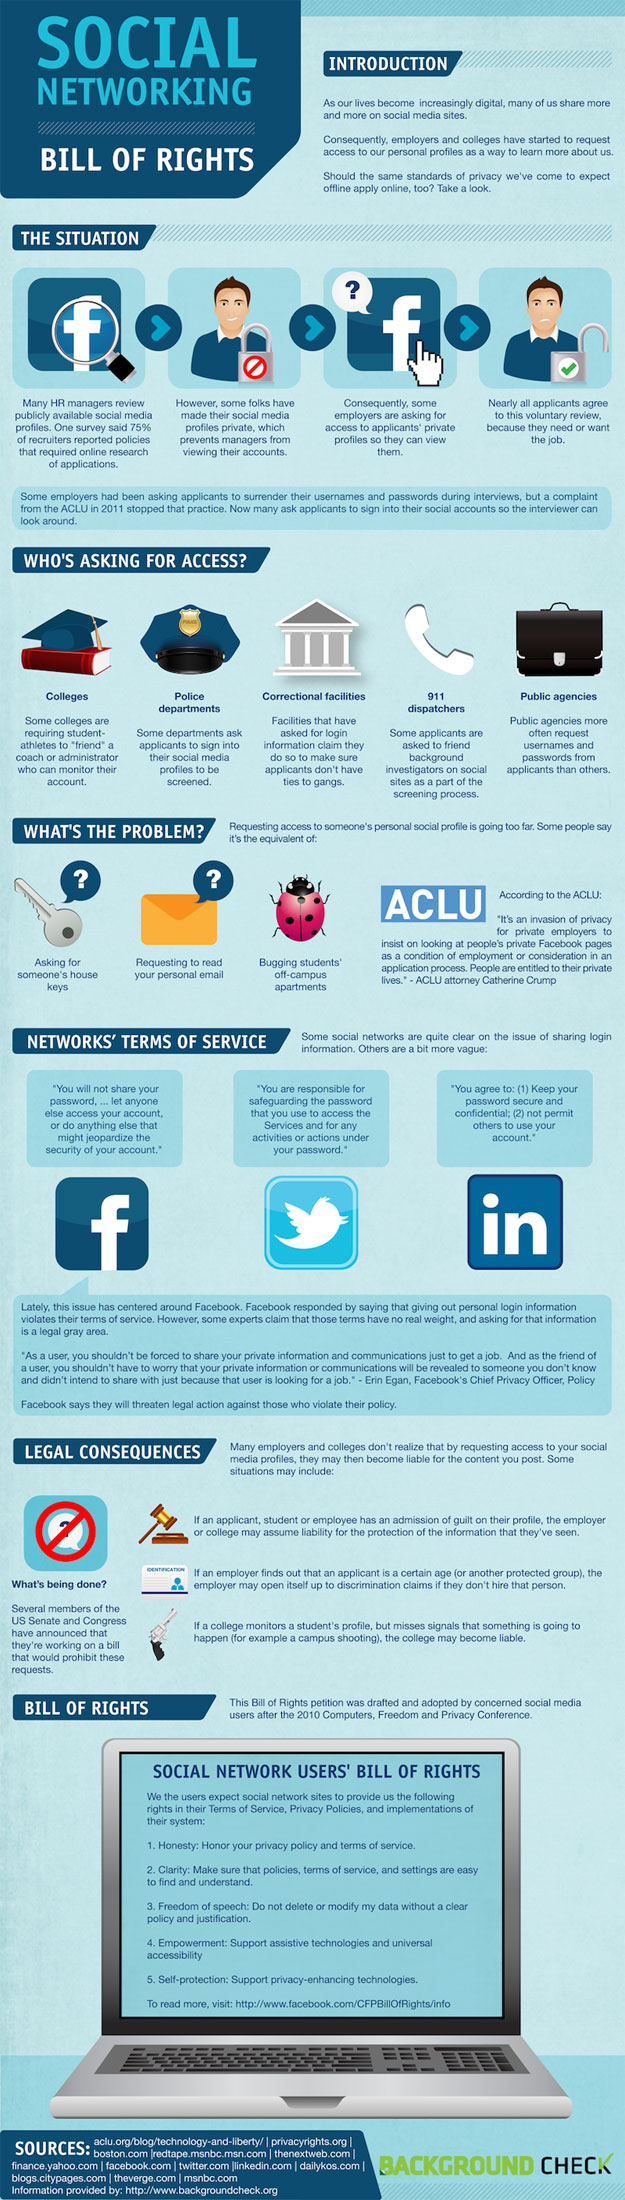 Social-Networking-Rights-Infographic